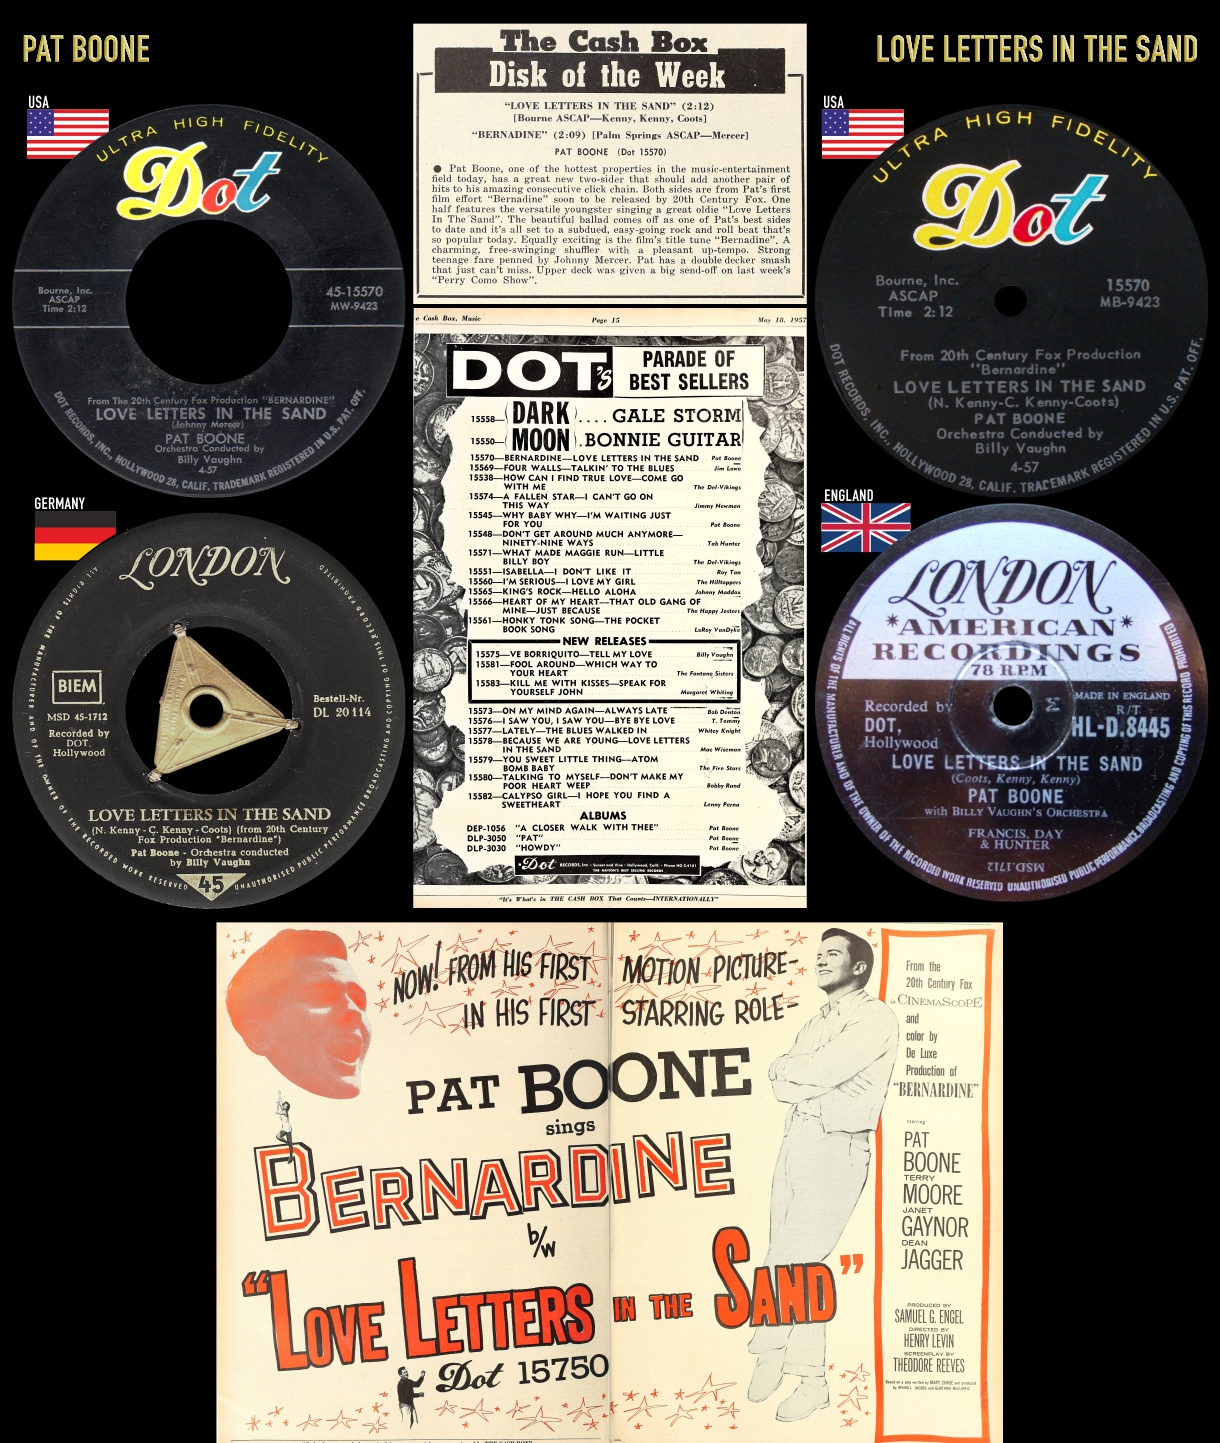 570608_Pat Boone_Love Letters In The Sand